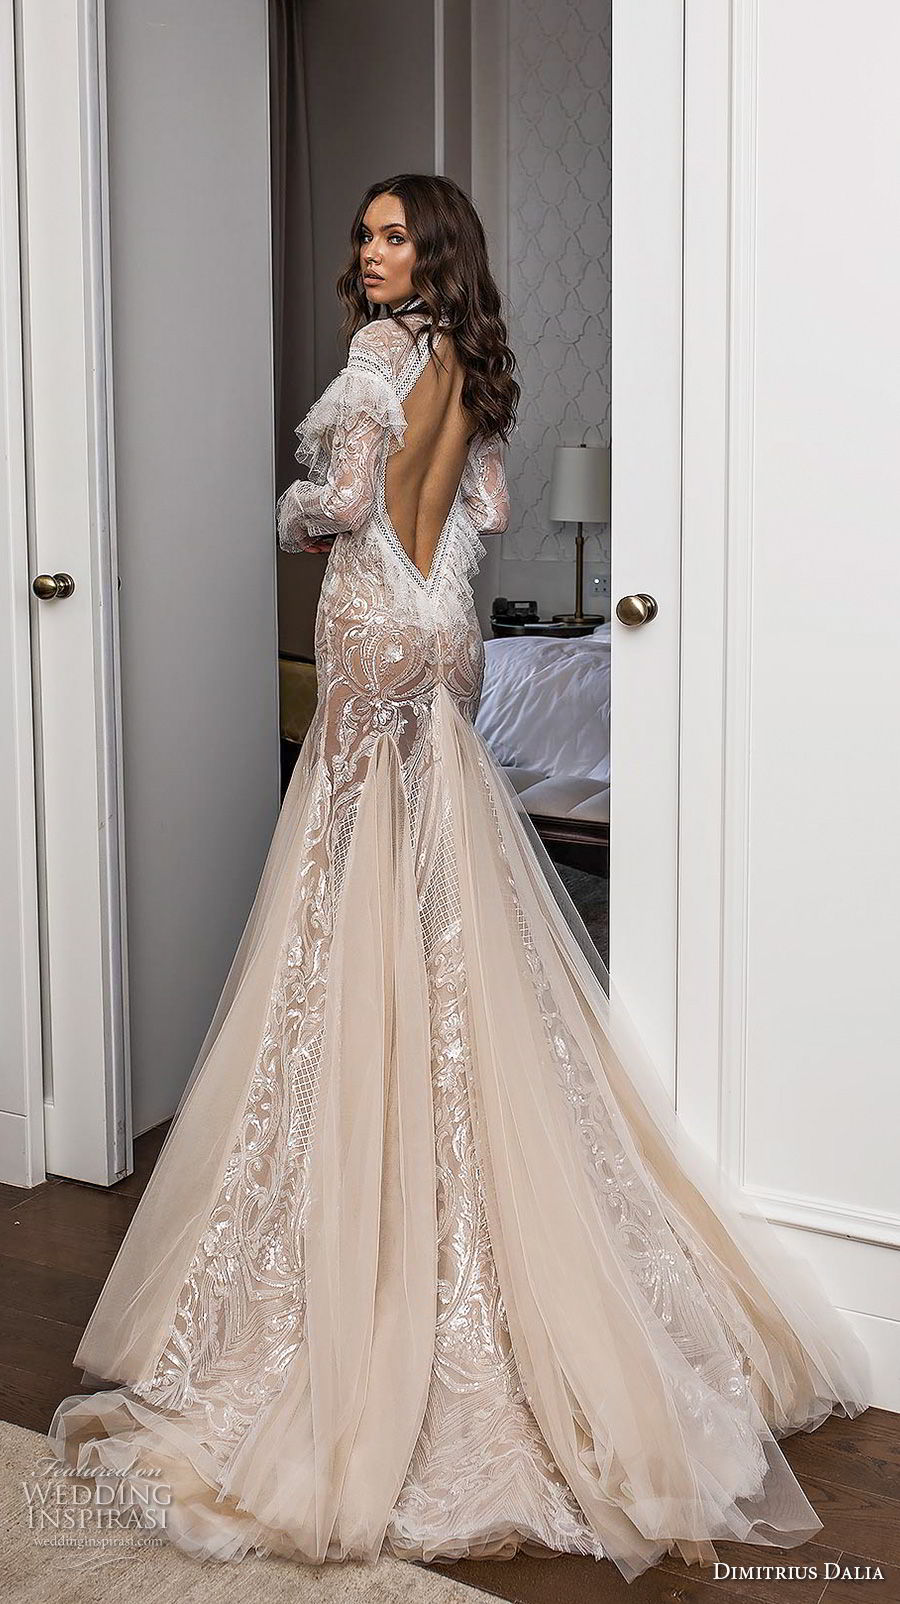 dimitrius dalia 2018 royal long sleeves high neck full embellishment slit skirt bohemian sexy fit and flare wedding dress low open back chapel train (10) bv